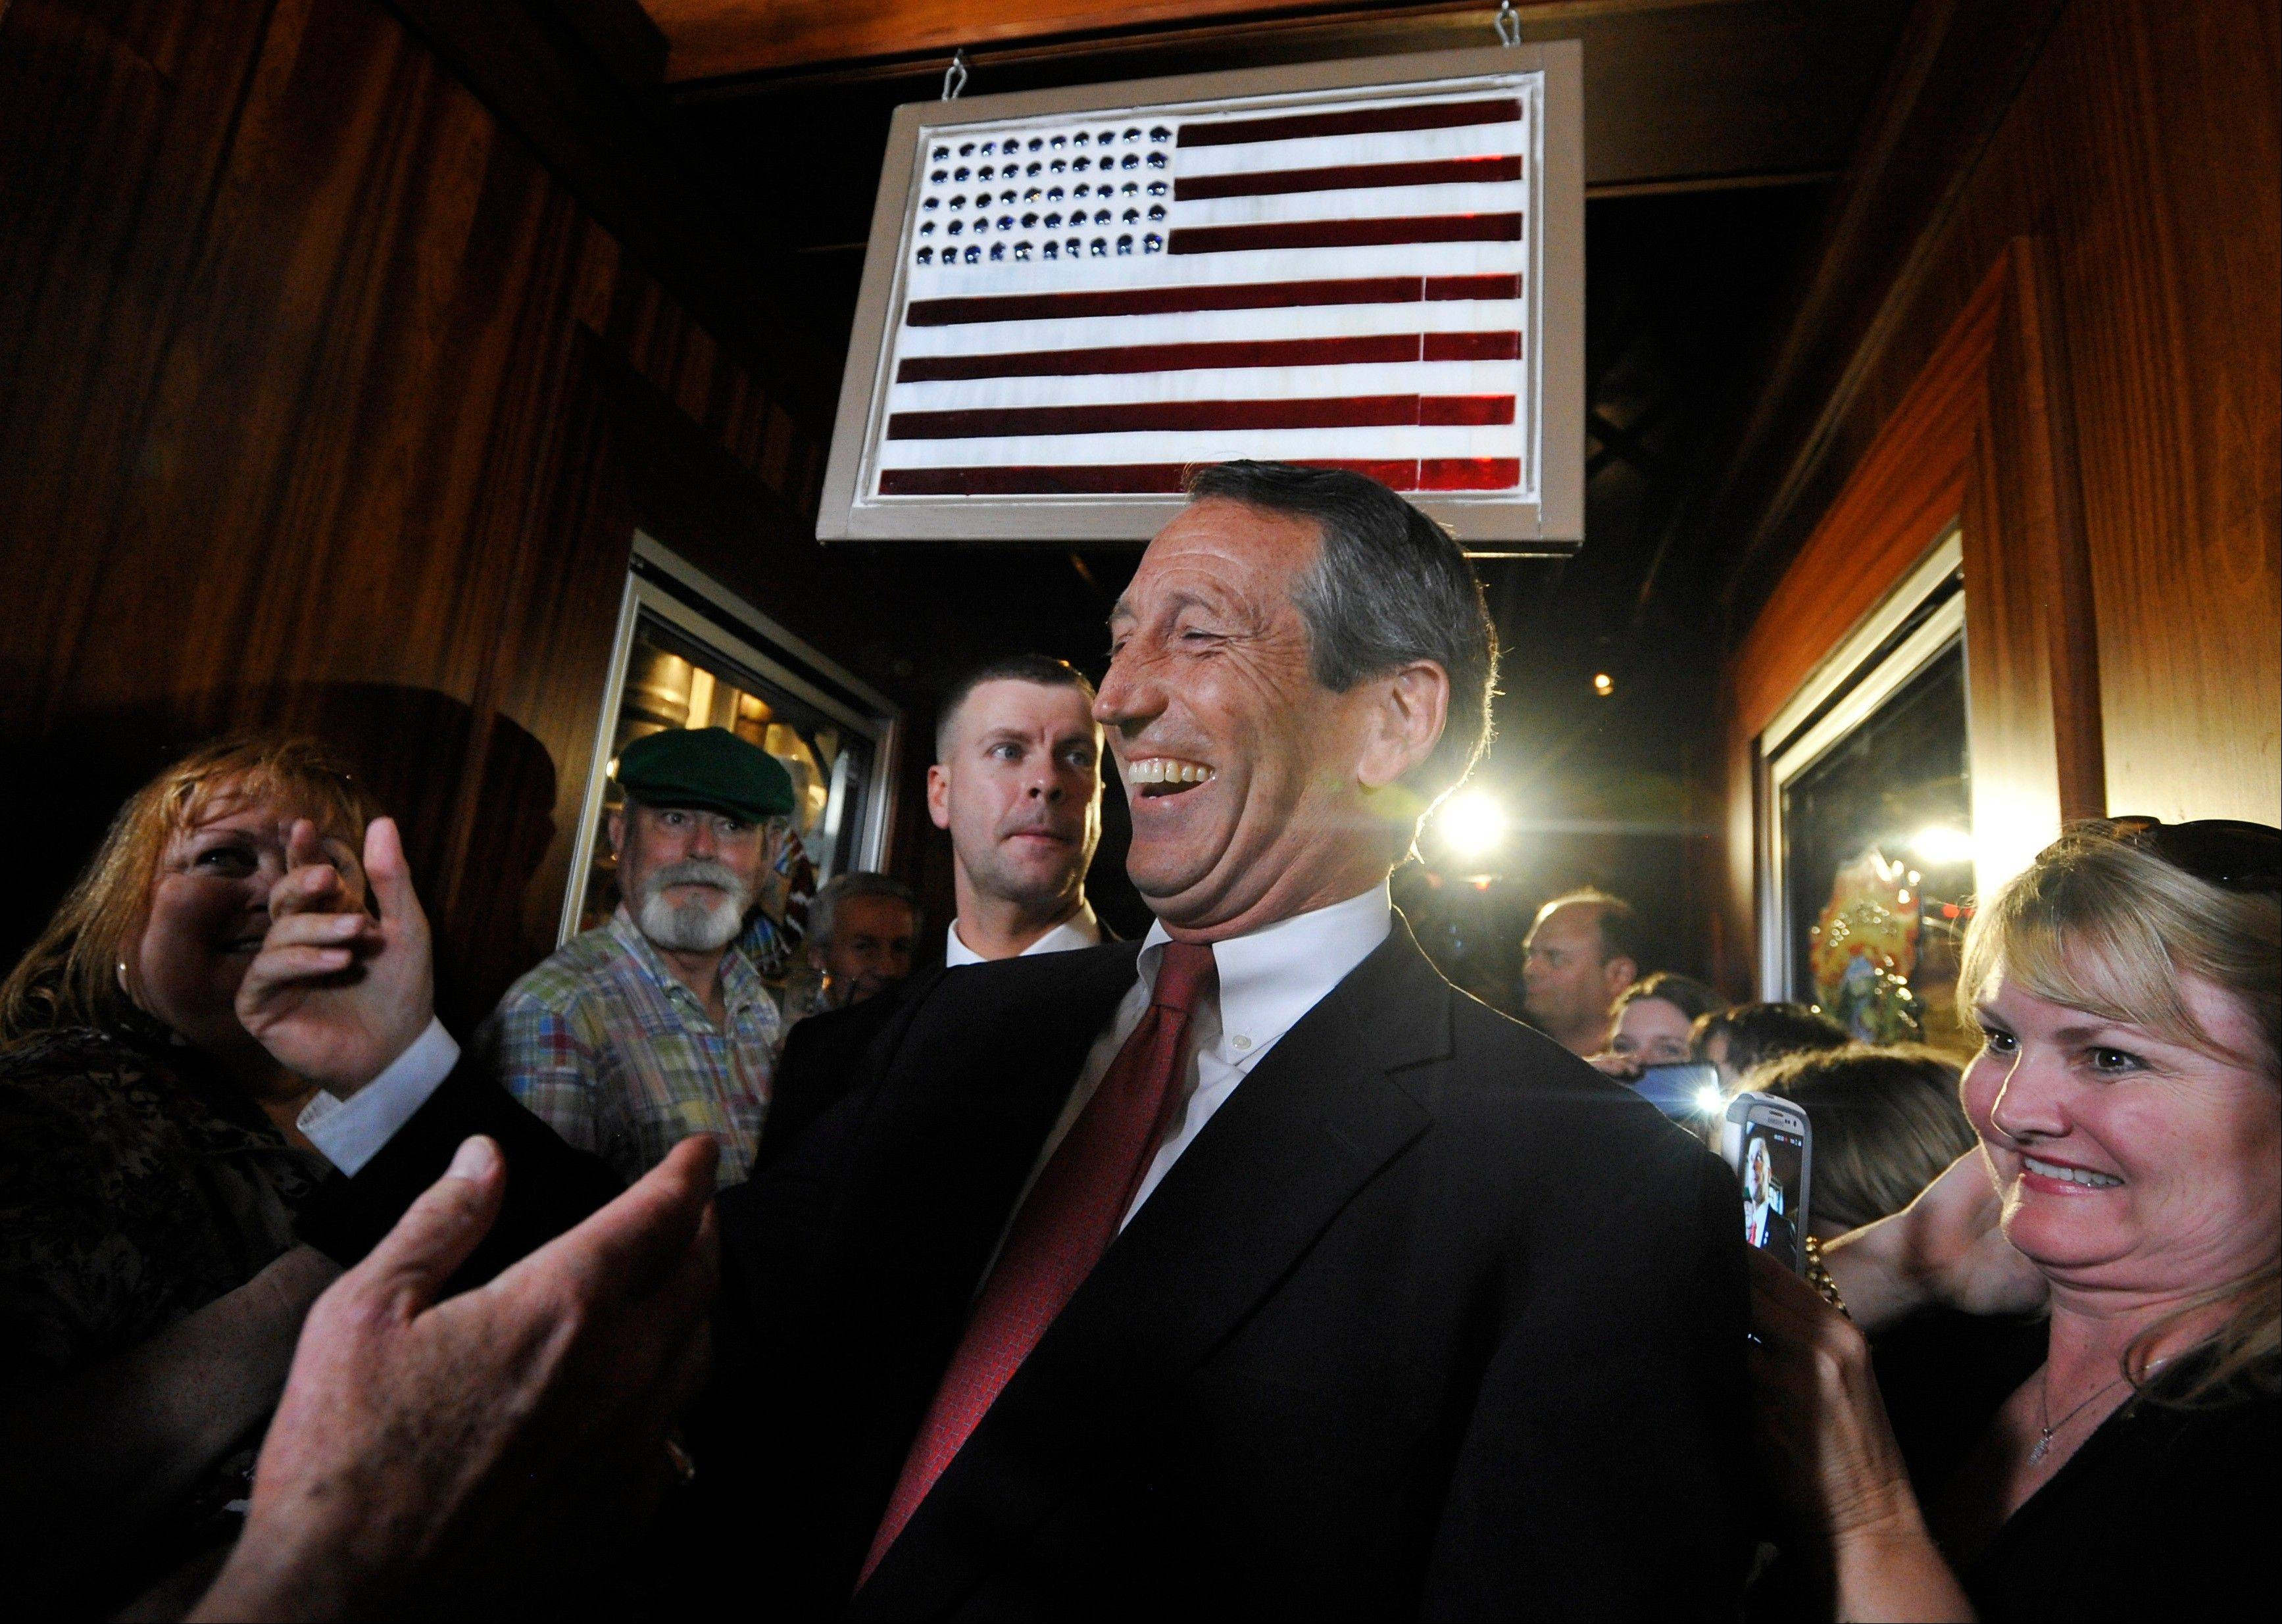 Former South Carolina Gov. Mark Sanford is greeted by supporters as he arrives to give his victory speech on Tuesday, May 7, 2013, in Mt. Pleasant, S.C. Sanford won back his old congressional seat in the state's 1st District in a special election.